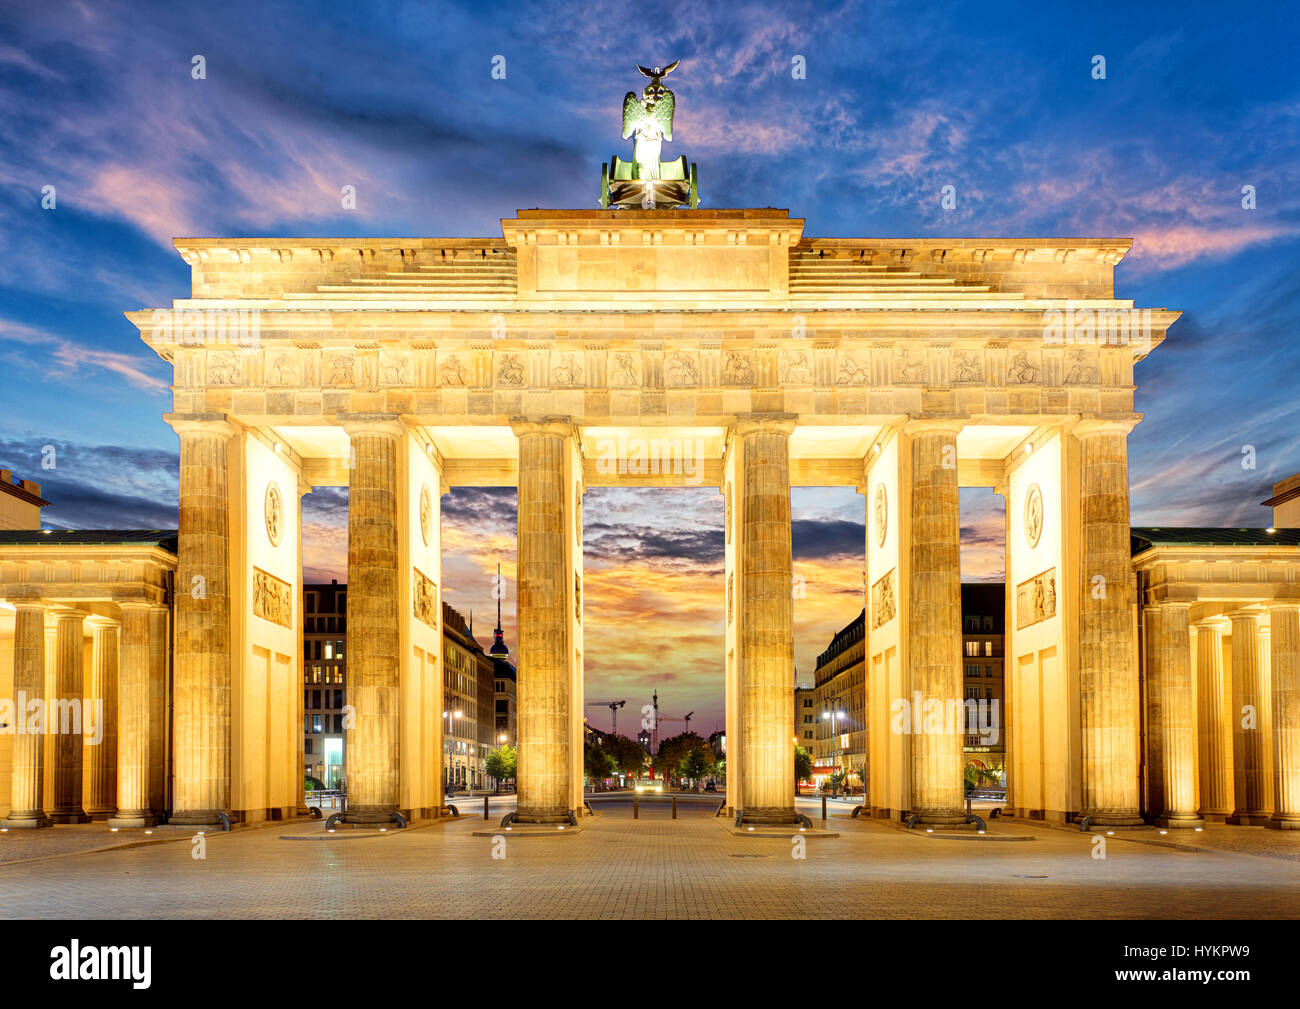 Portail de Berlin Photo Stock